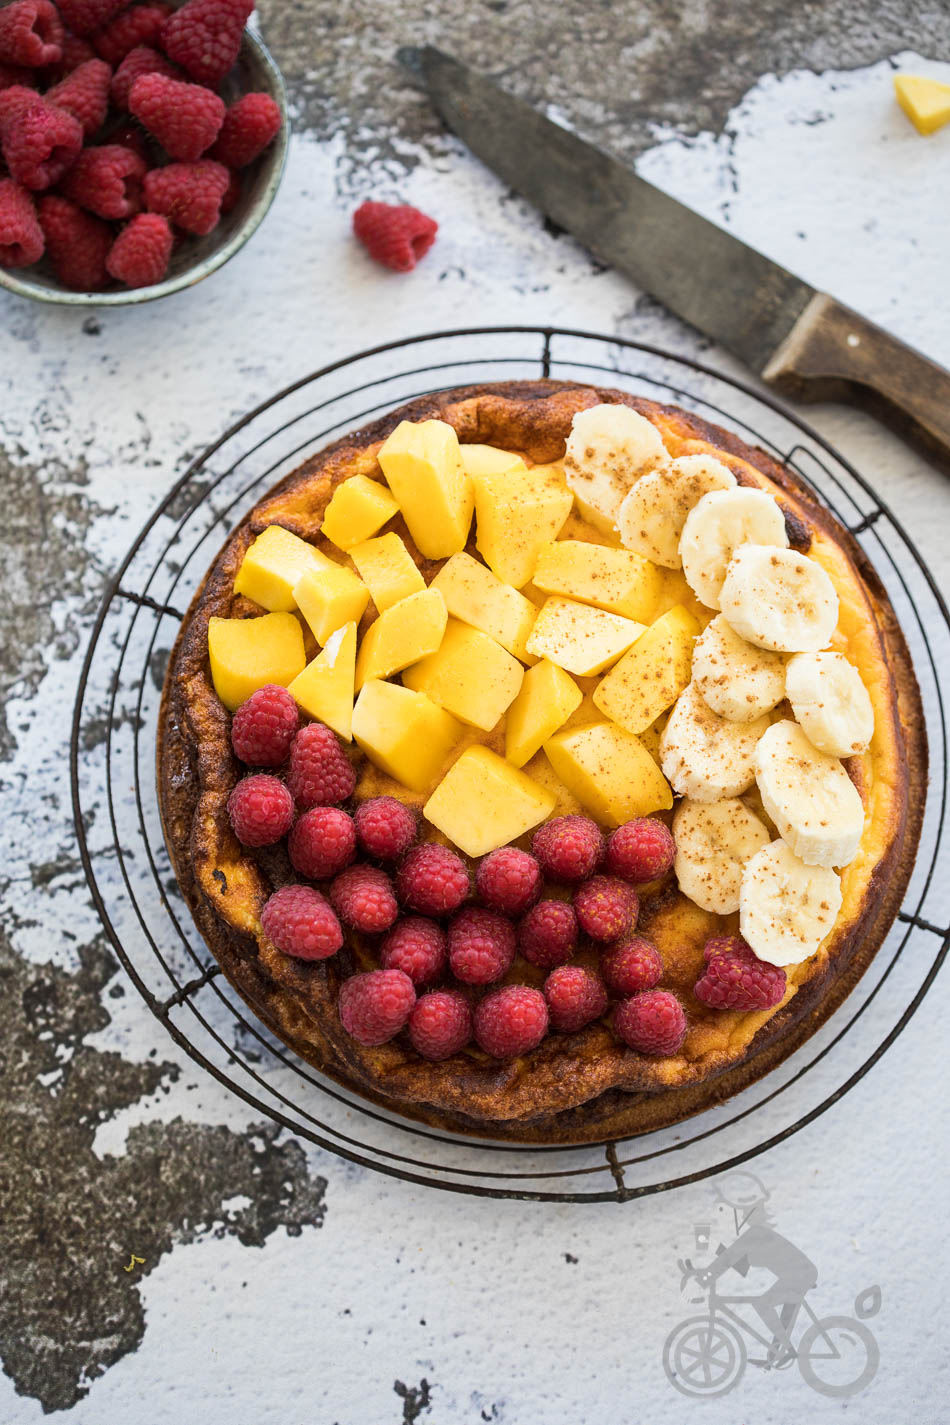 Ricotta cheesecake van Eat drink paleo